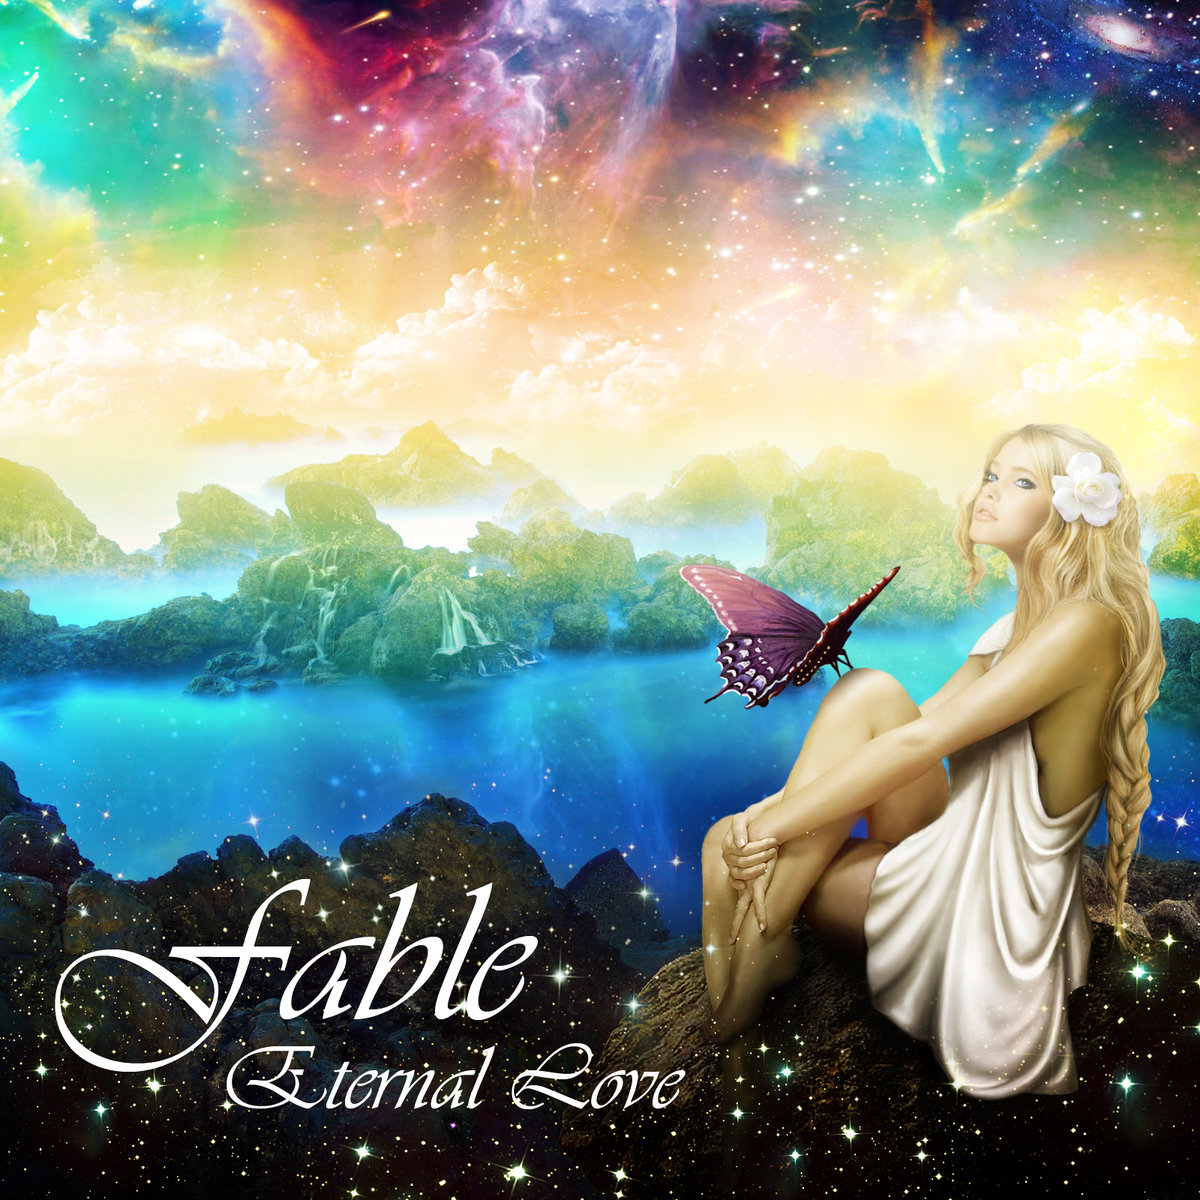 Eternal Love - Memories @ 'Fable' album (ambient, chill)